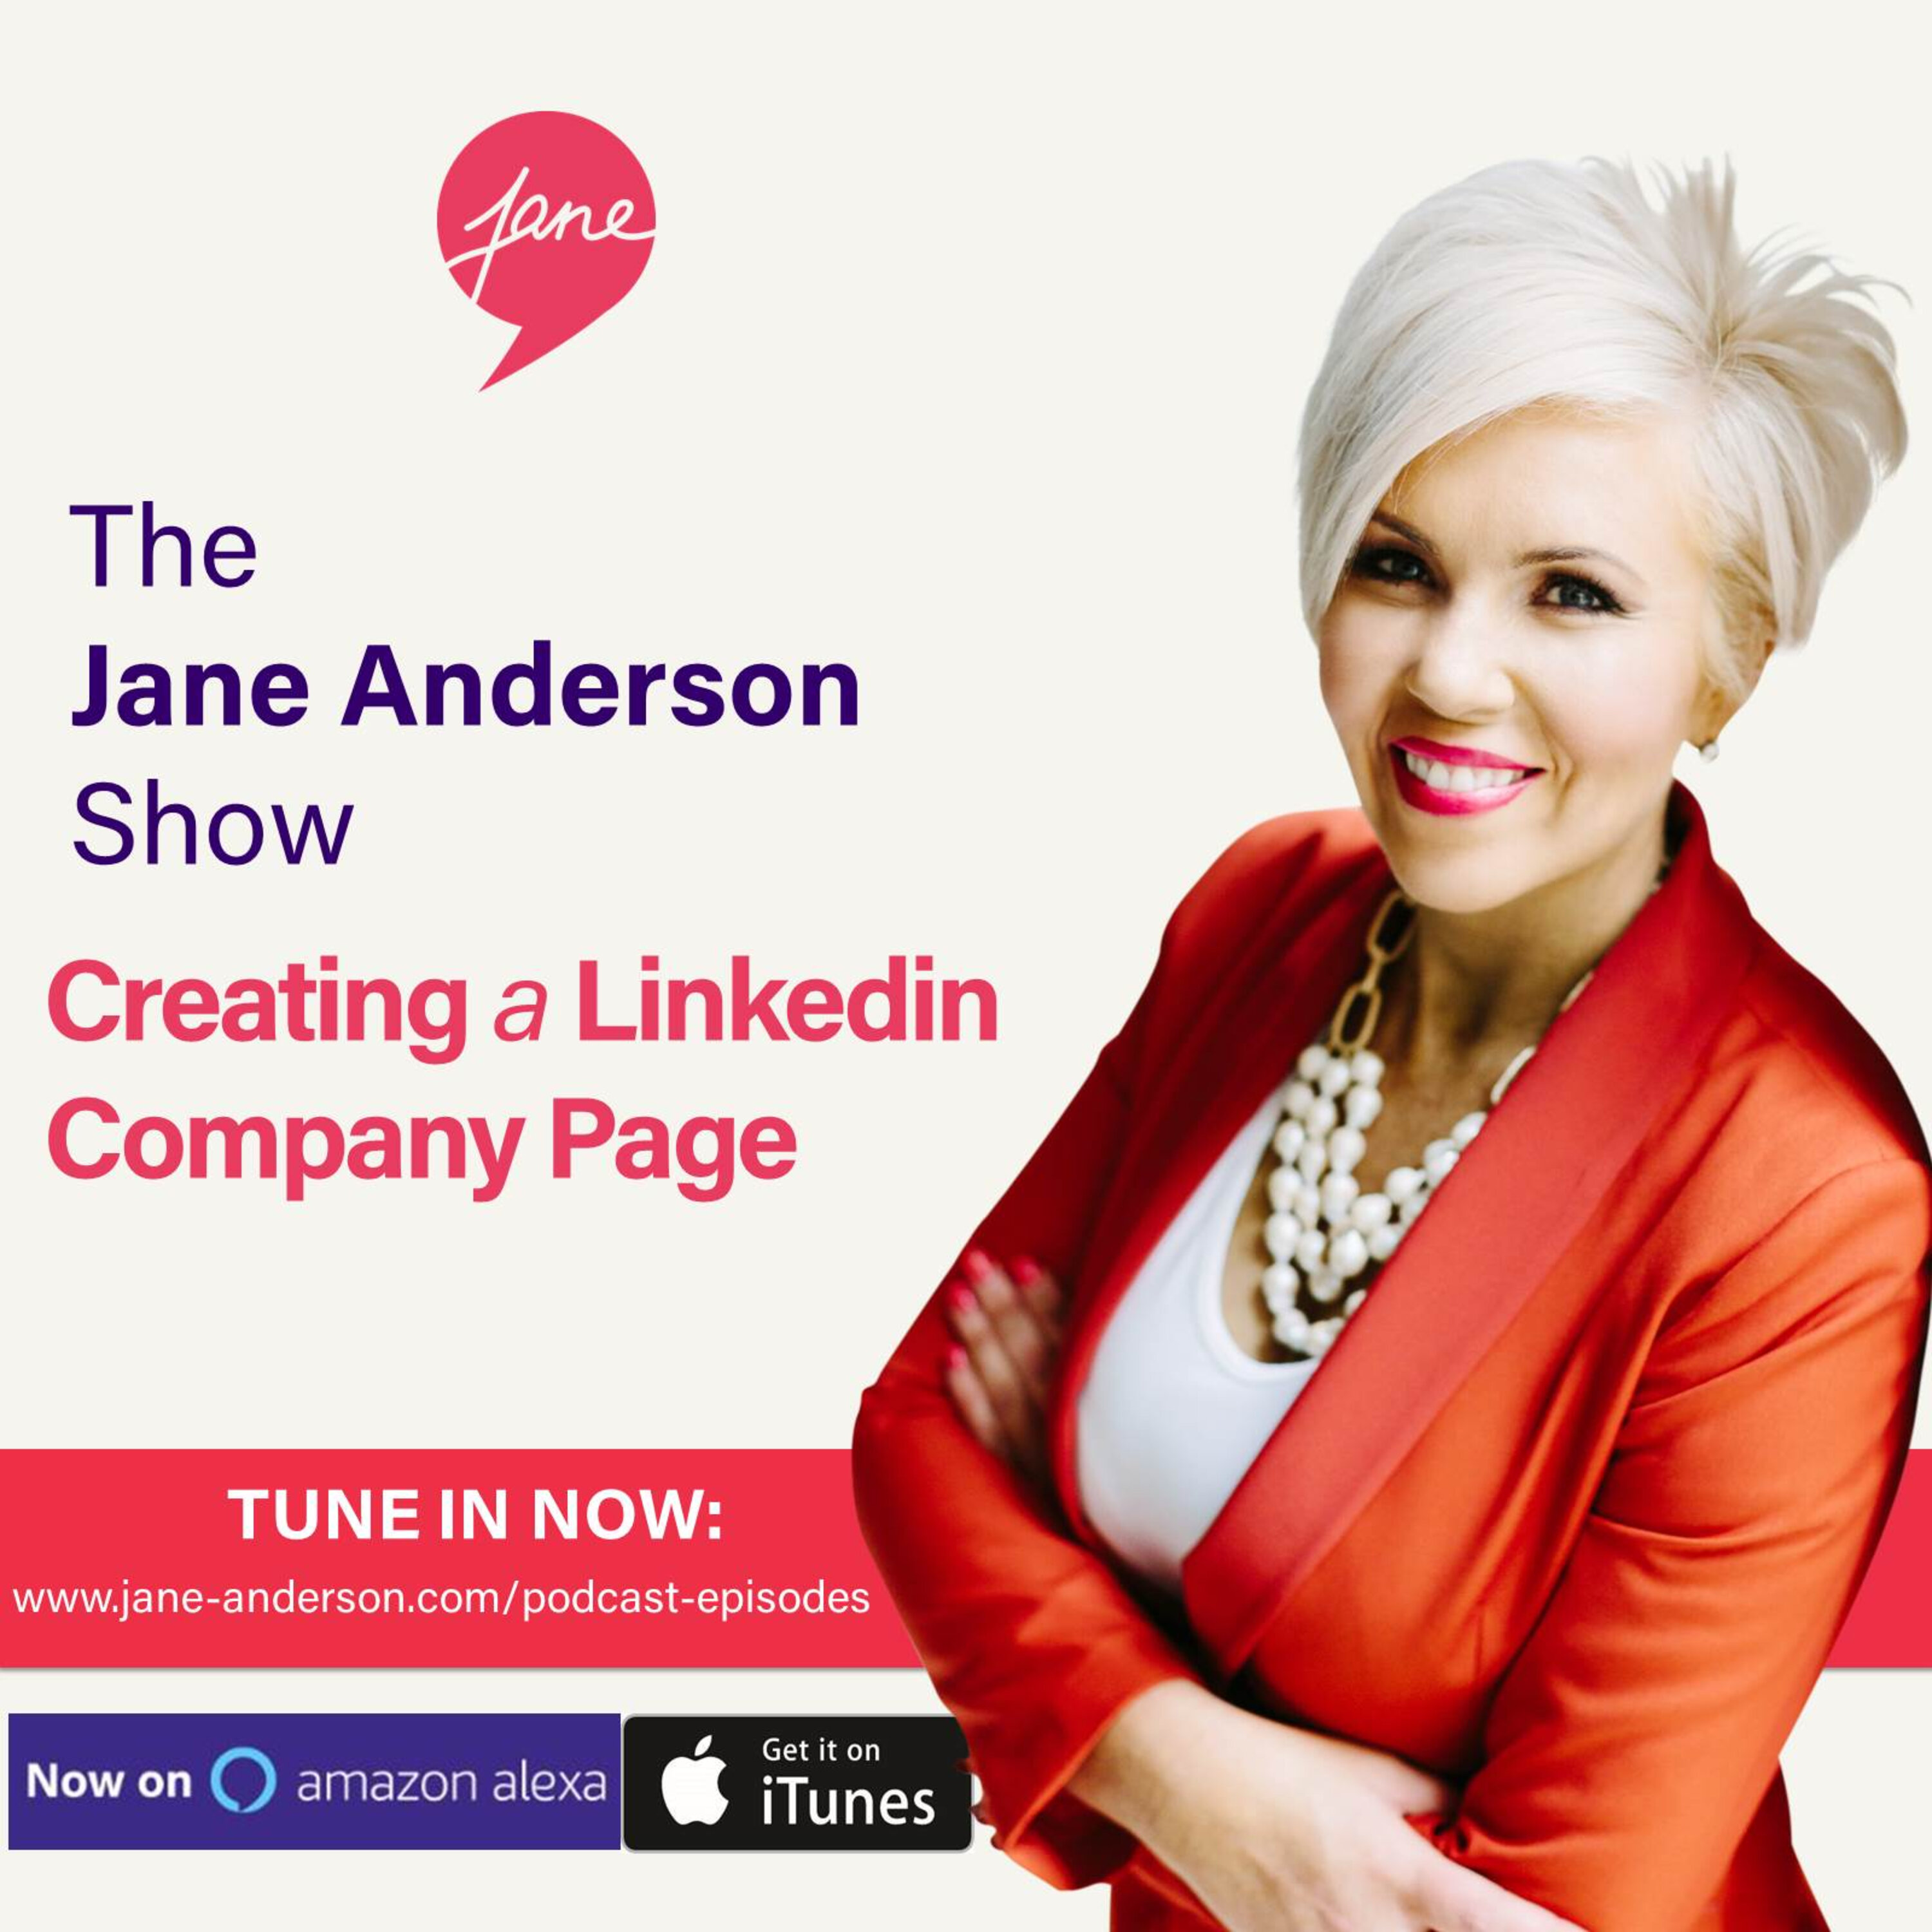 Episode 27 - Creating a LinkedIn Company Page